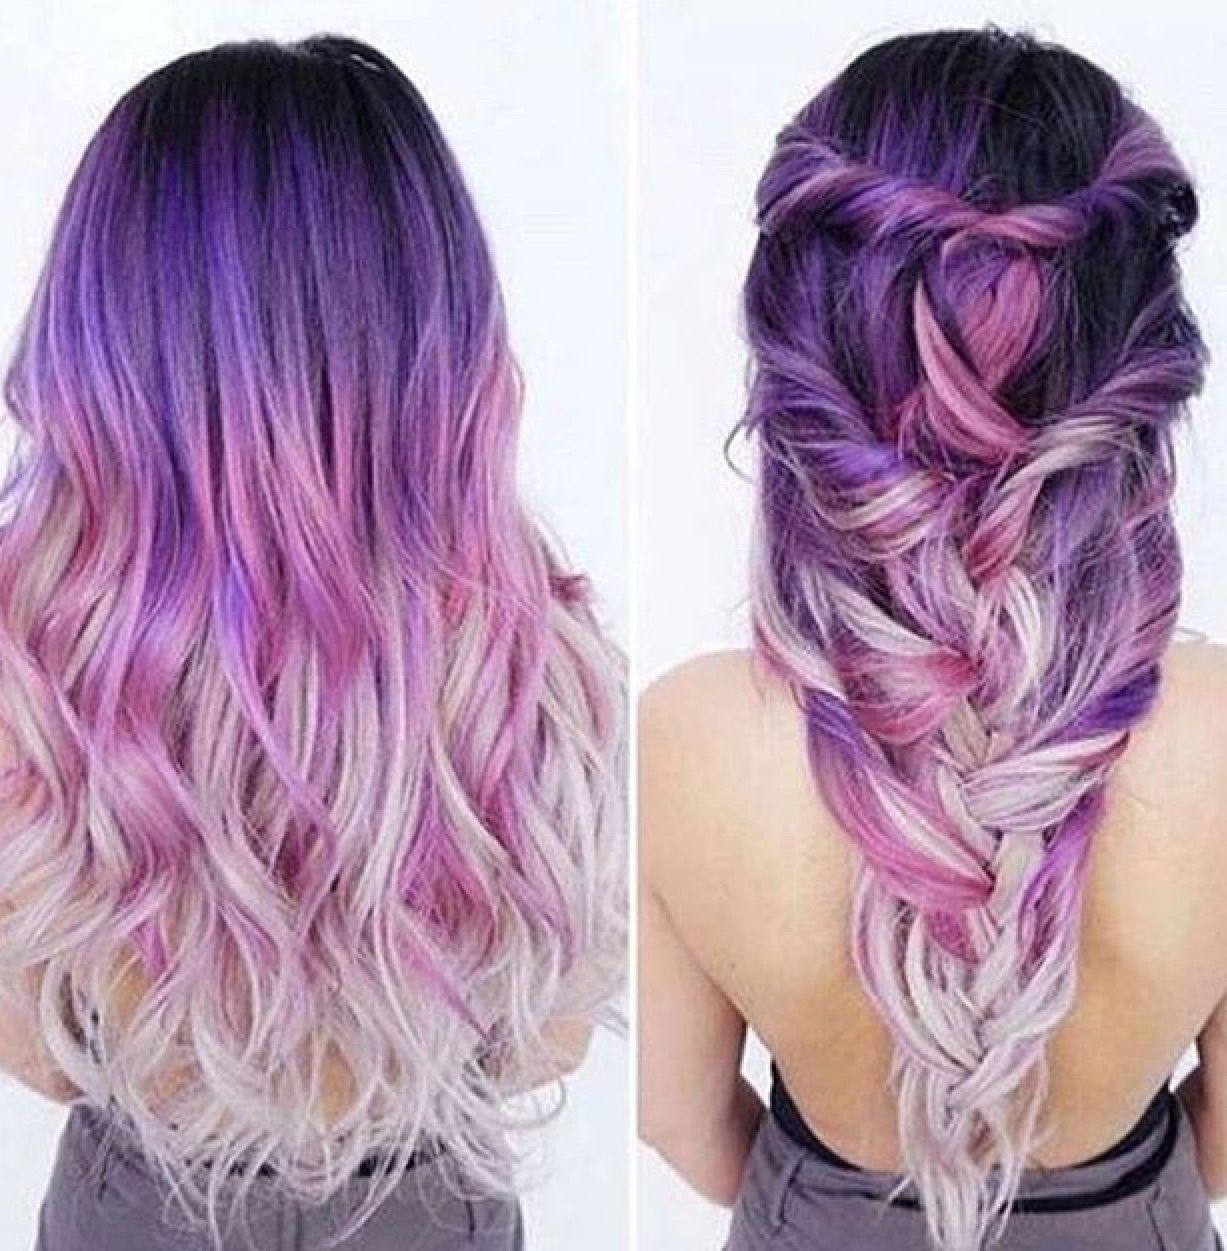 purple ombre hair | Hair color purple, Ombre hair color ...